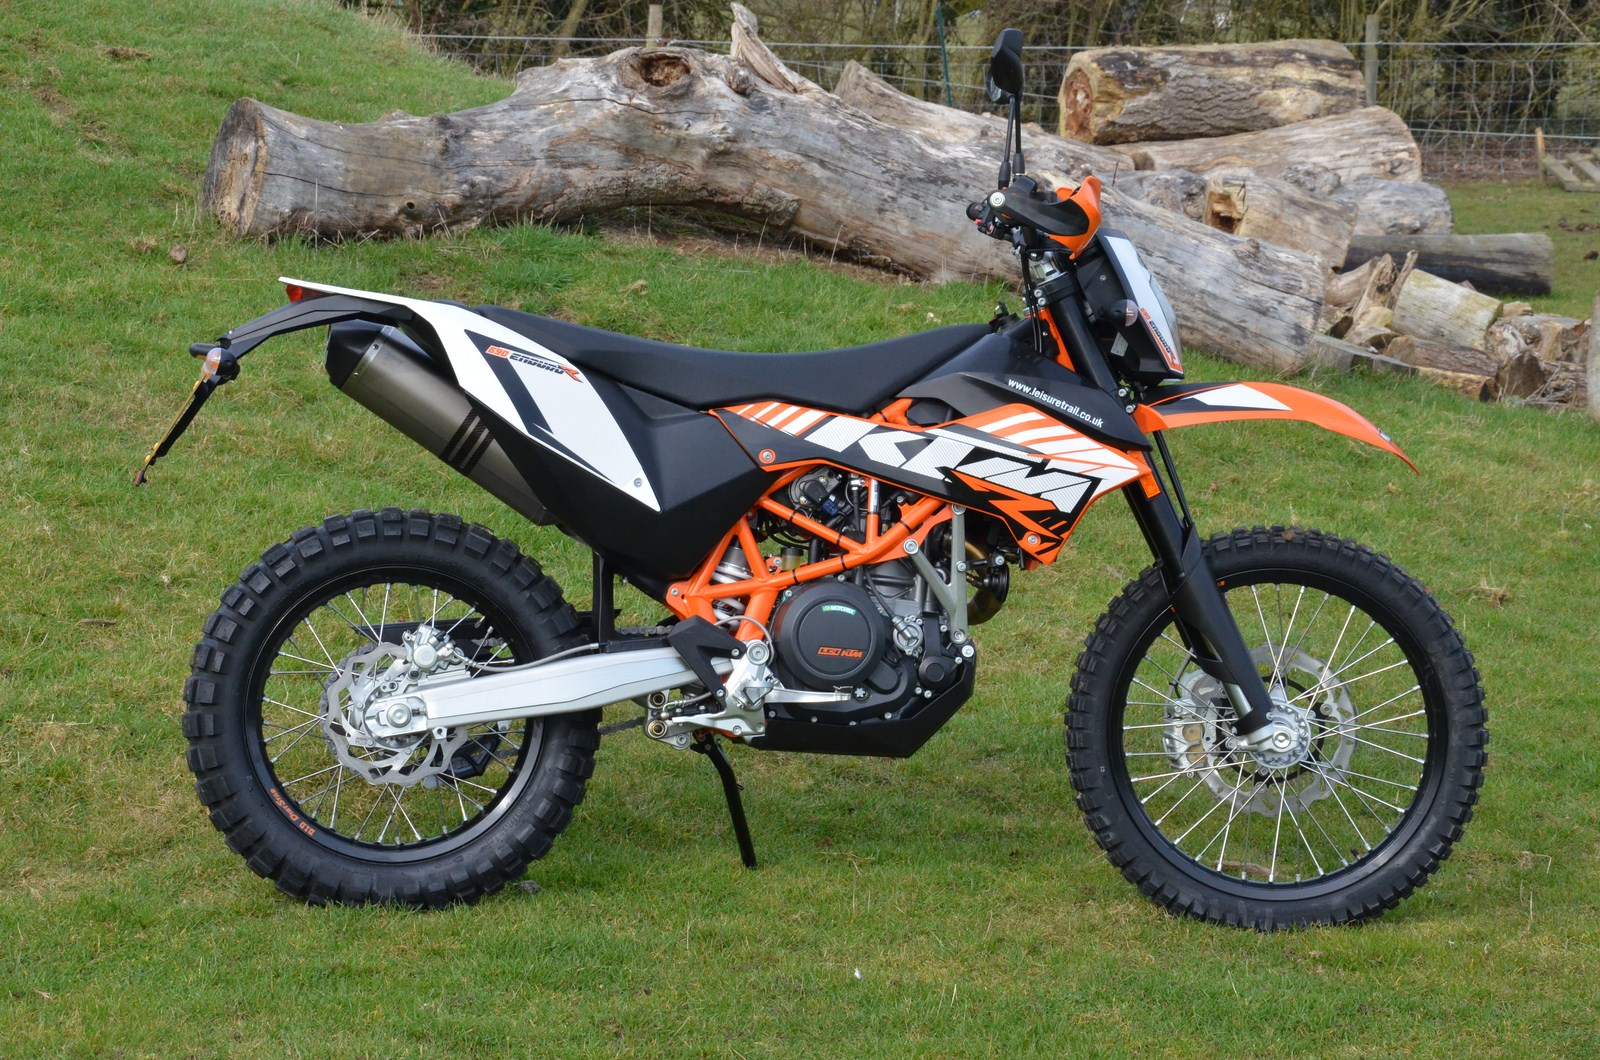 2012 ktm 690 enduro r moto zombdrive com. Black Bedroom Furniture Sets. Home Design Ideas